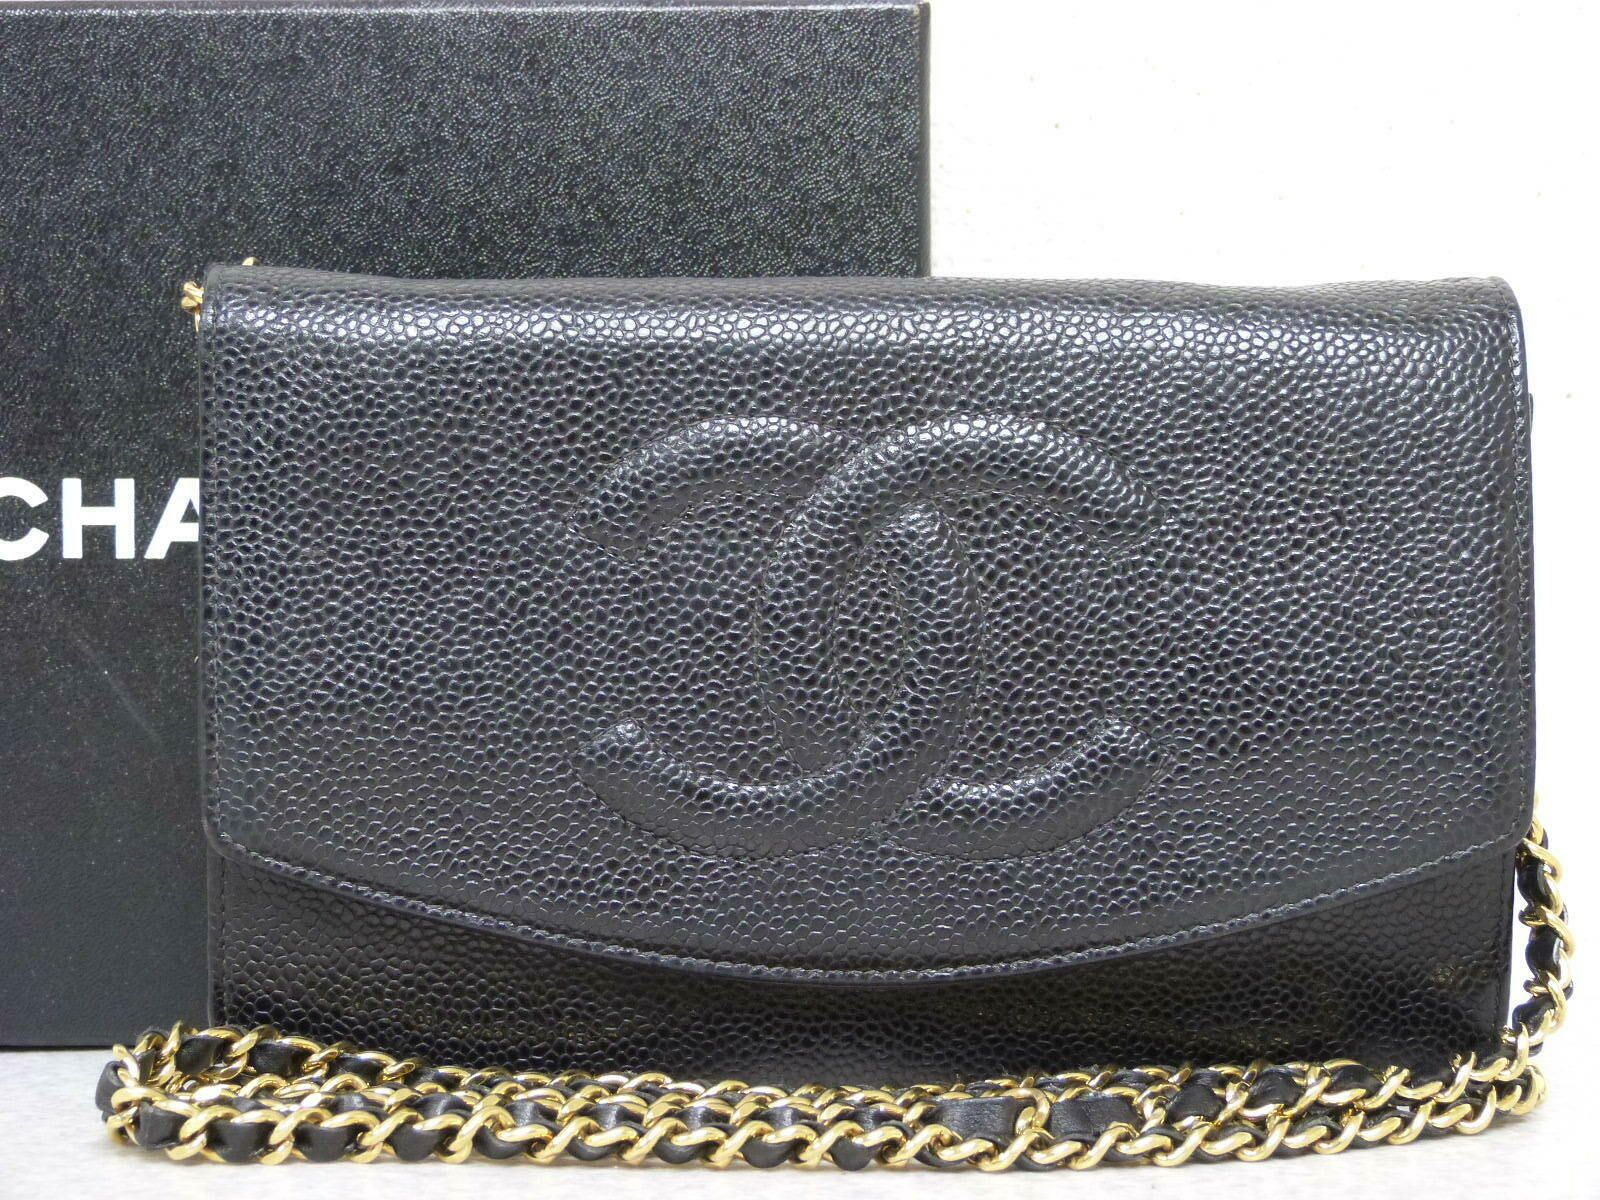 daff18e5af89  FORSALE ra5614 Auth CHANEL Black Caviar Skin CC WOC Wallet On Chain  Shoulder Bag -